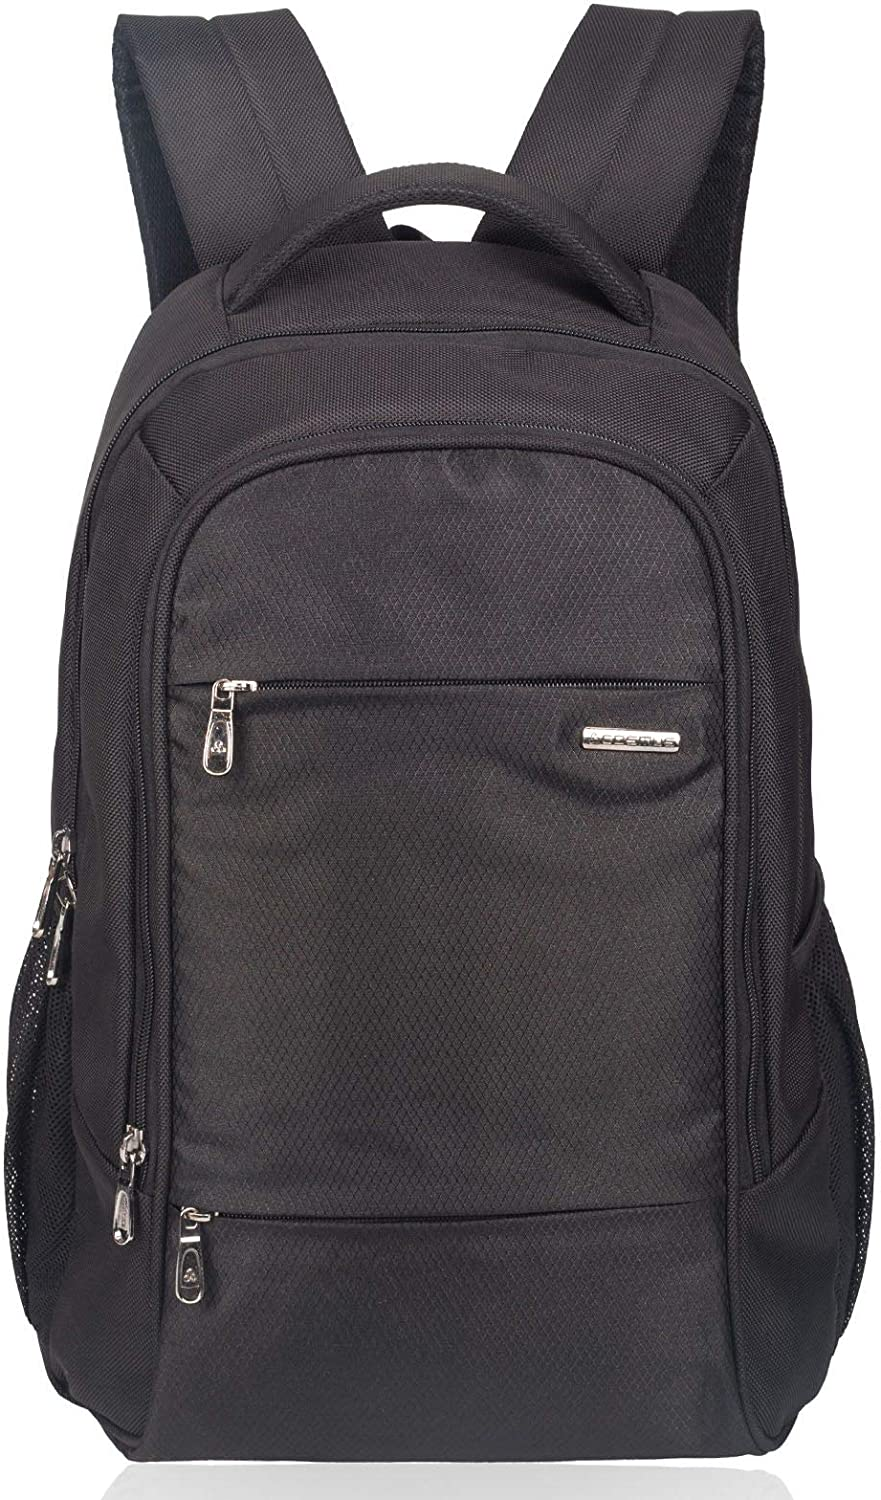 Laptop Backpack for 15.6 inch Laptop - Cosmus Darwin 29 litres Office Backpack - sleek everyday use backpack - Black